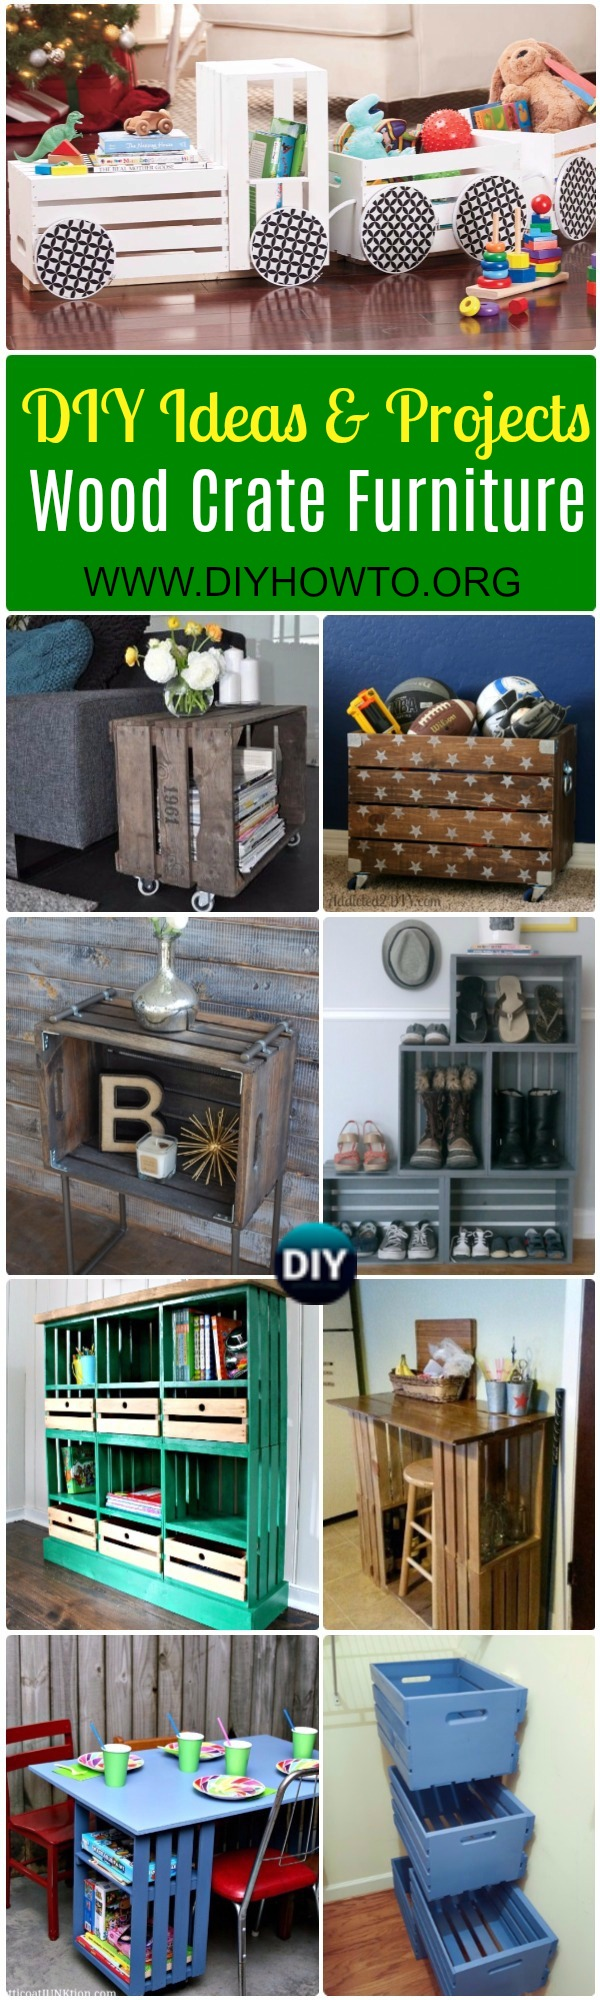 wood crate furniture diy. A Collection Of DIY Wood Crate Furniture Ideas\u0026Projects: Wall Storage, Tractor Toy Storage Diy